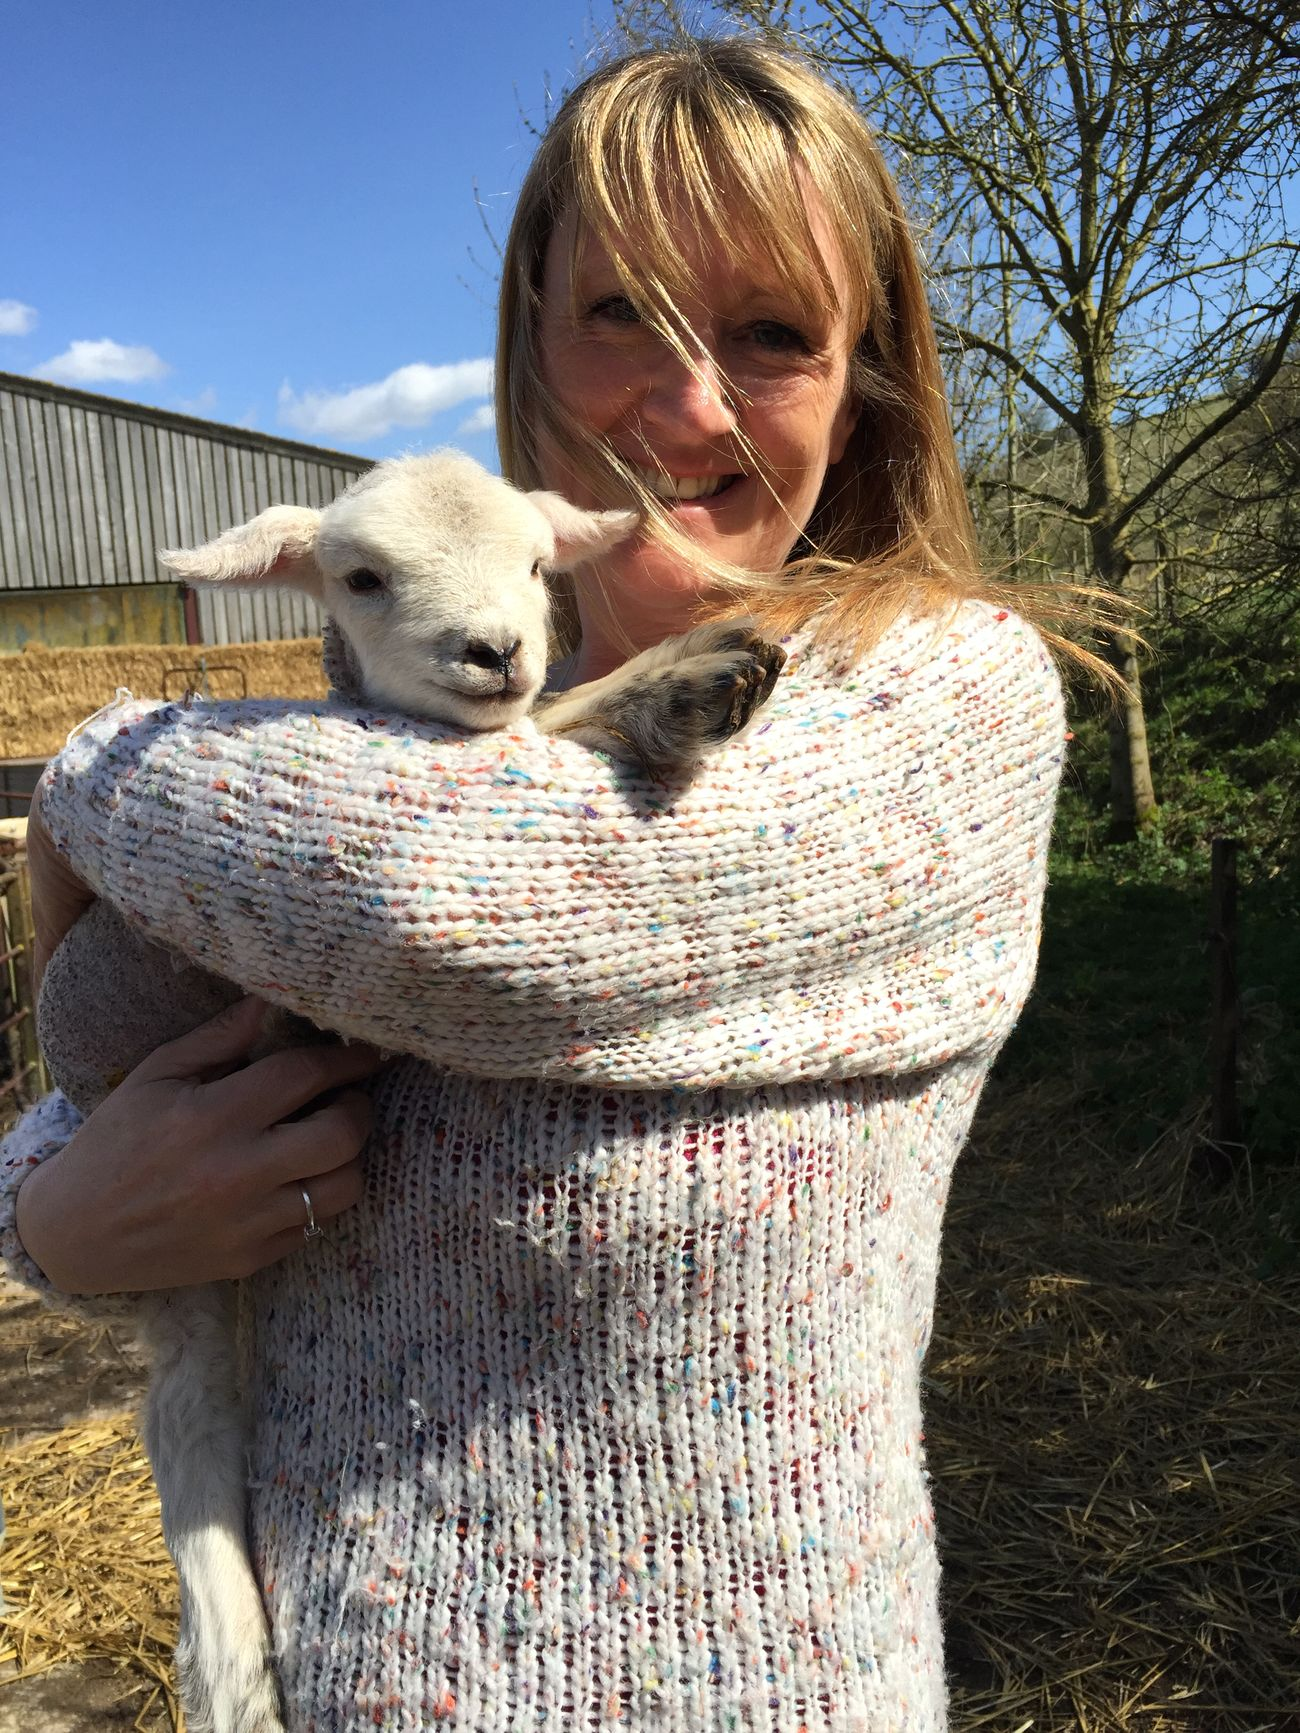 Lamb Farm Sheep Easter Lambing Season Farming Cute Stotfoldlife